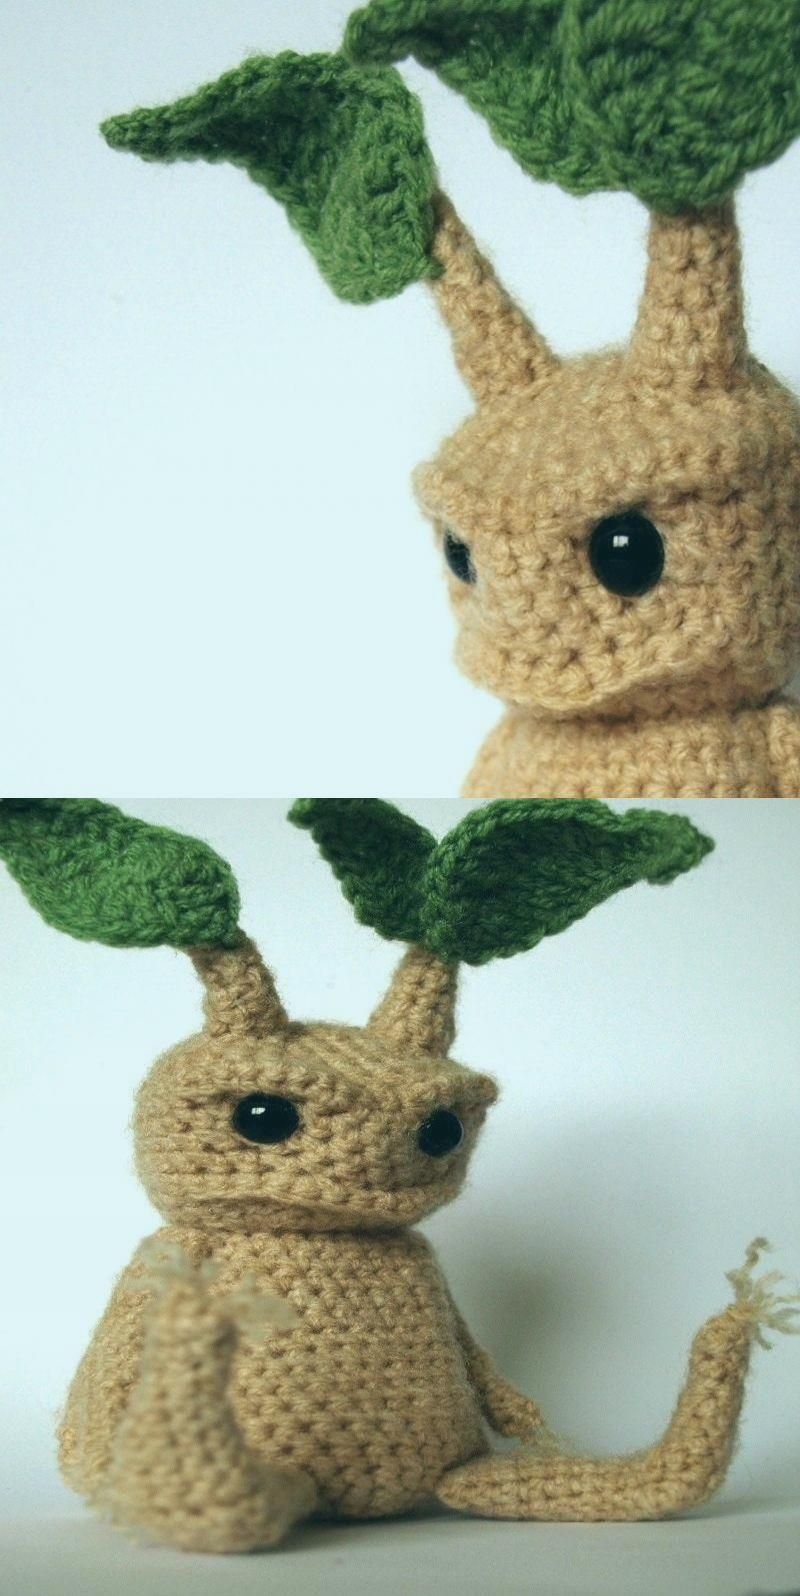 mandrake+root | HP Cute Mandrake root patterns | Harry potter ... | 1596x800